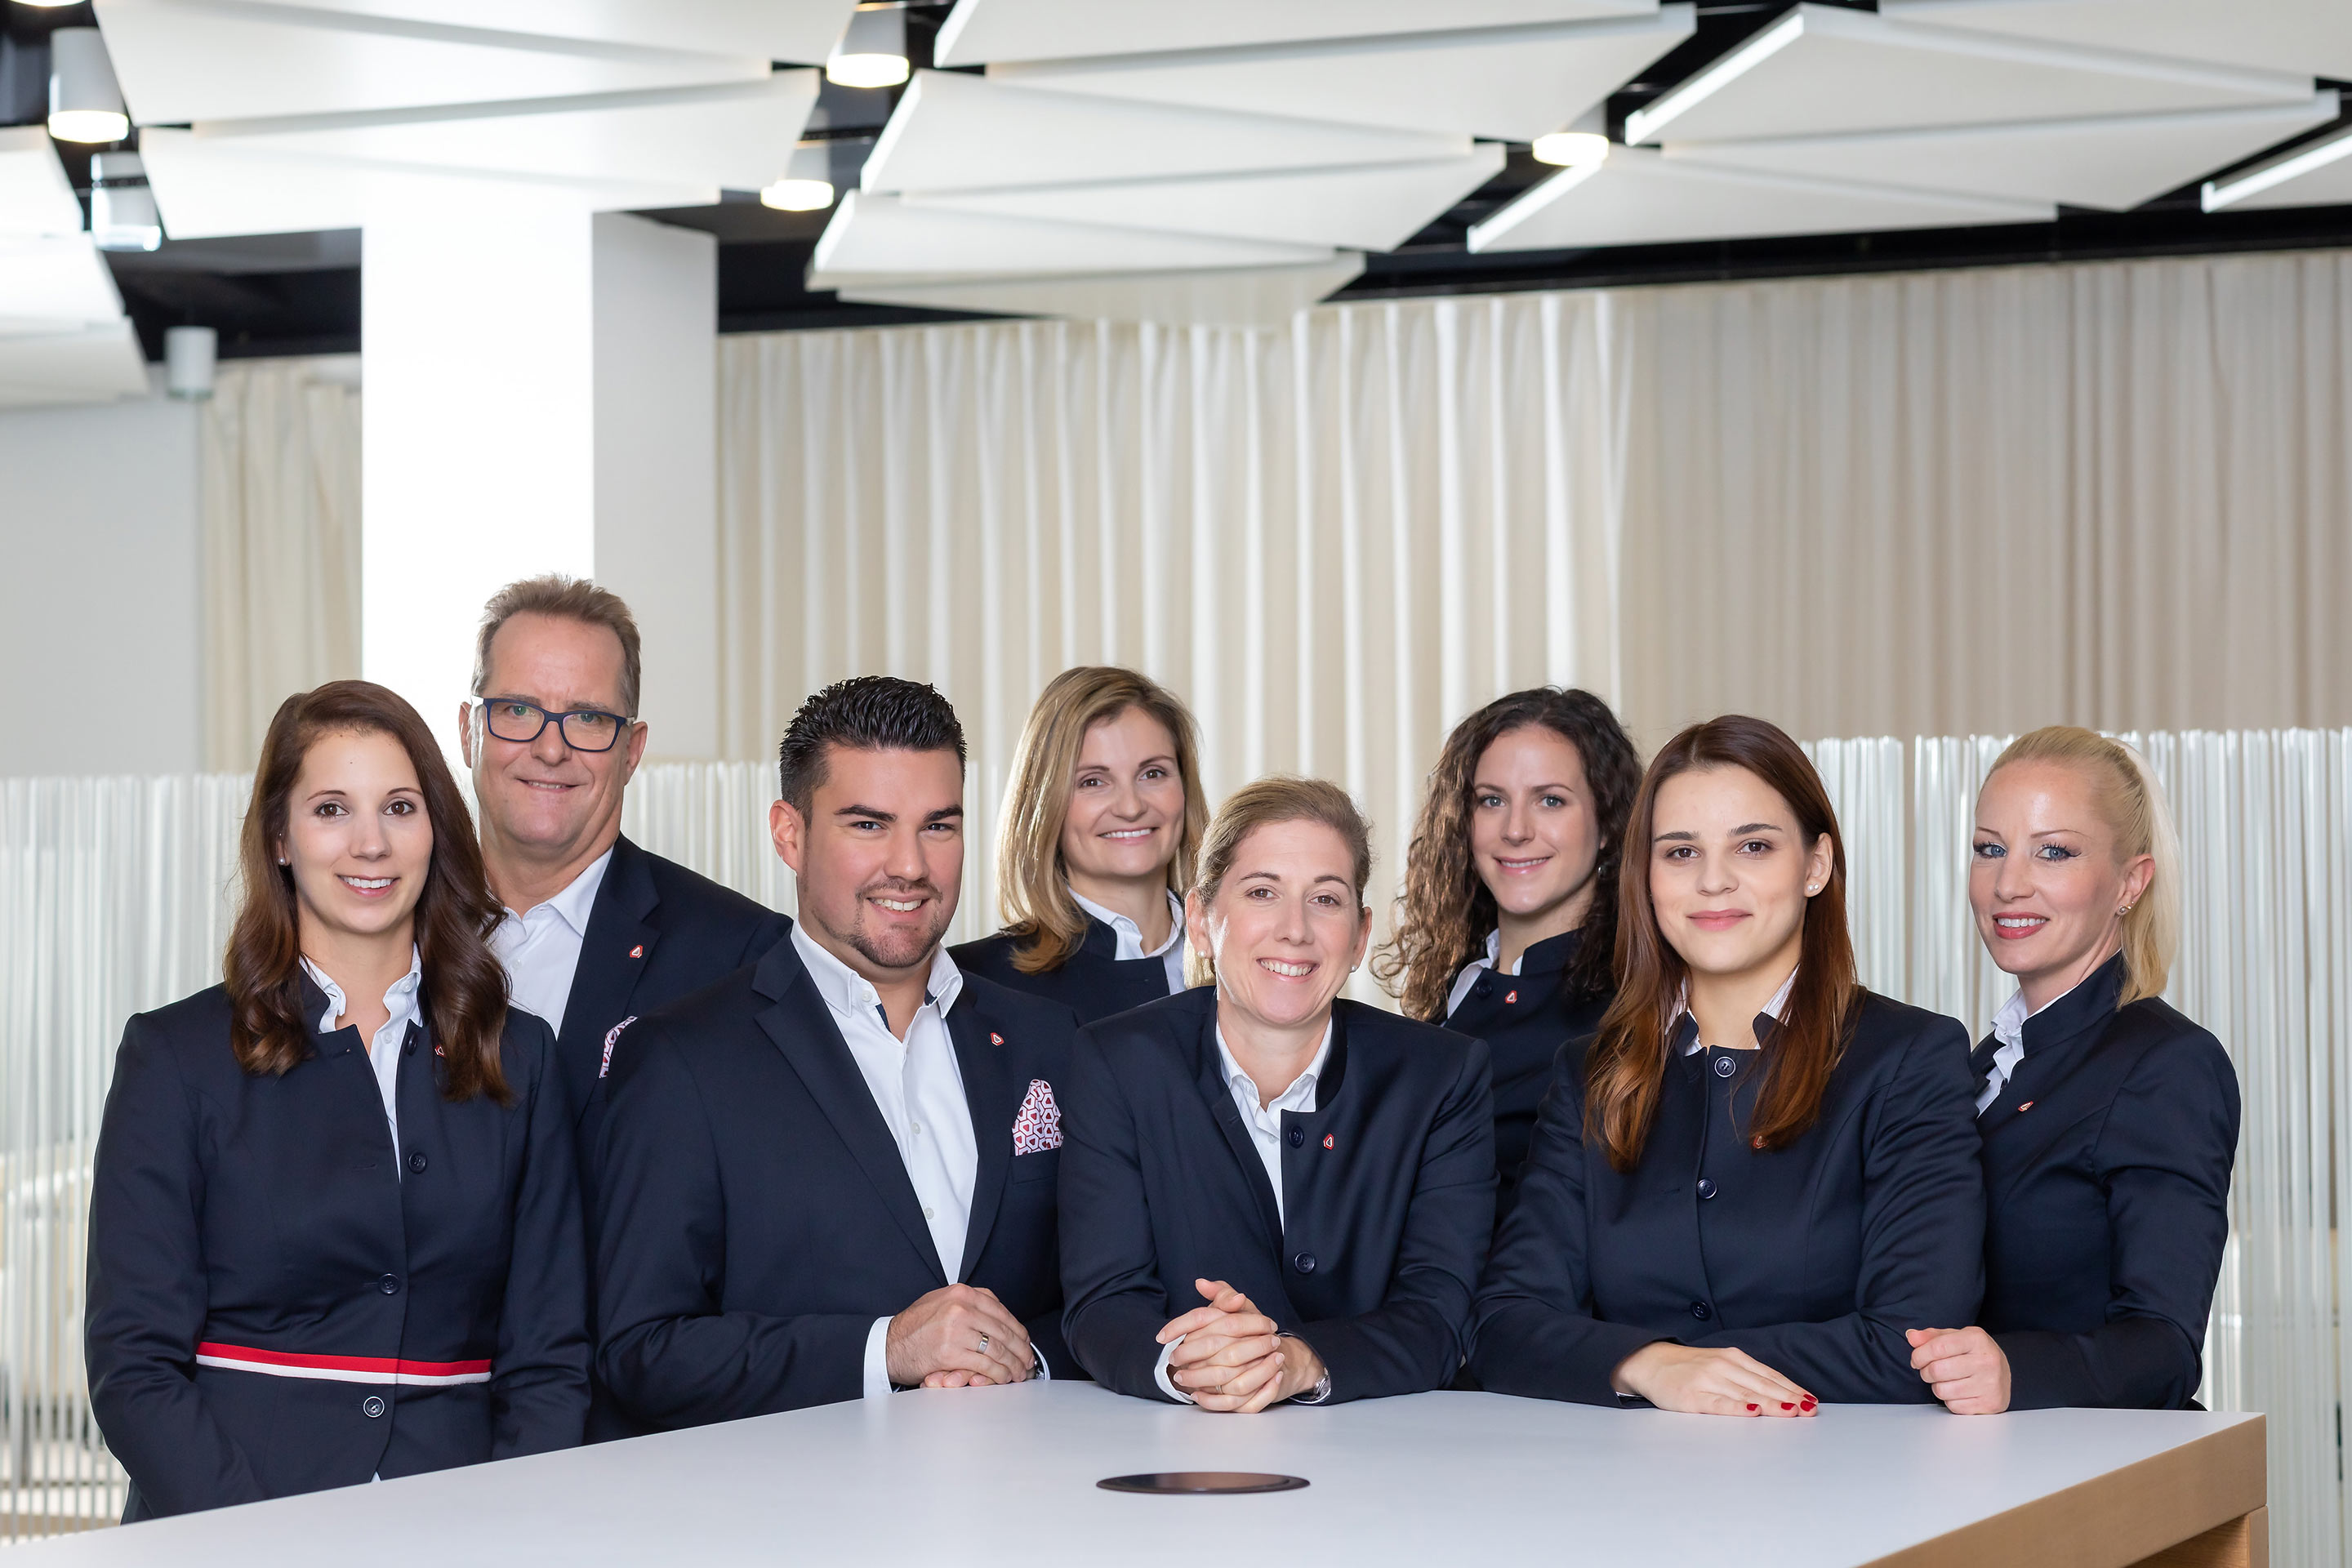 Foto: Sales Team Austria Center Vienna